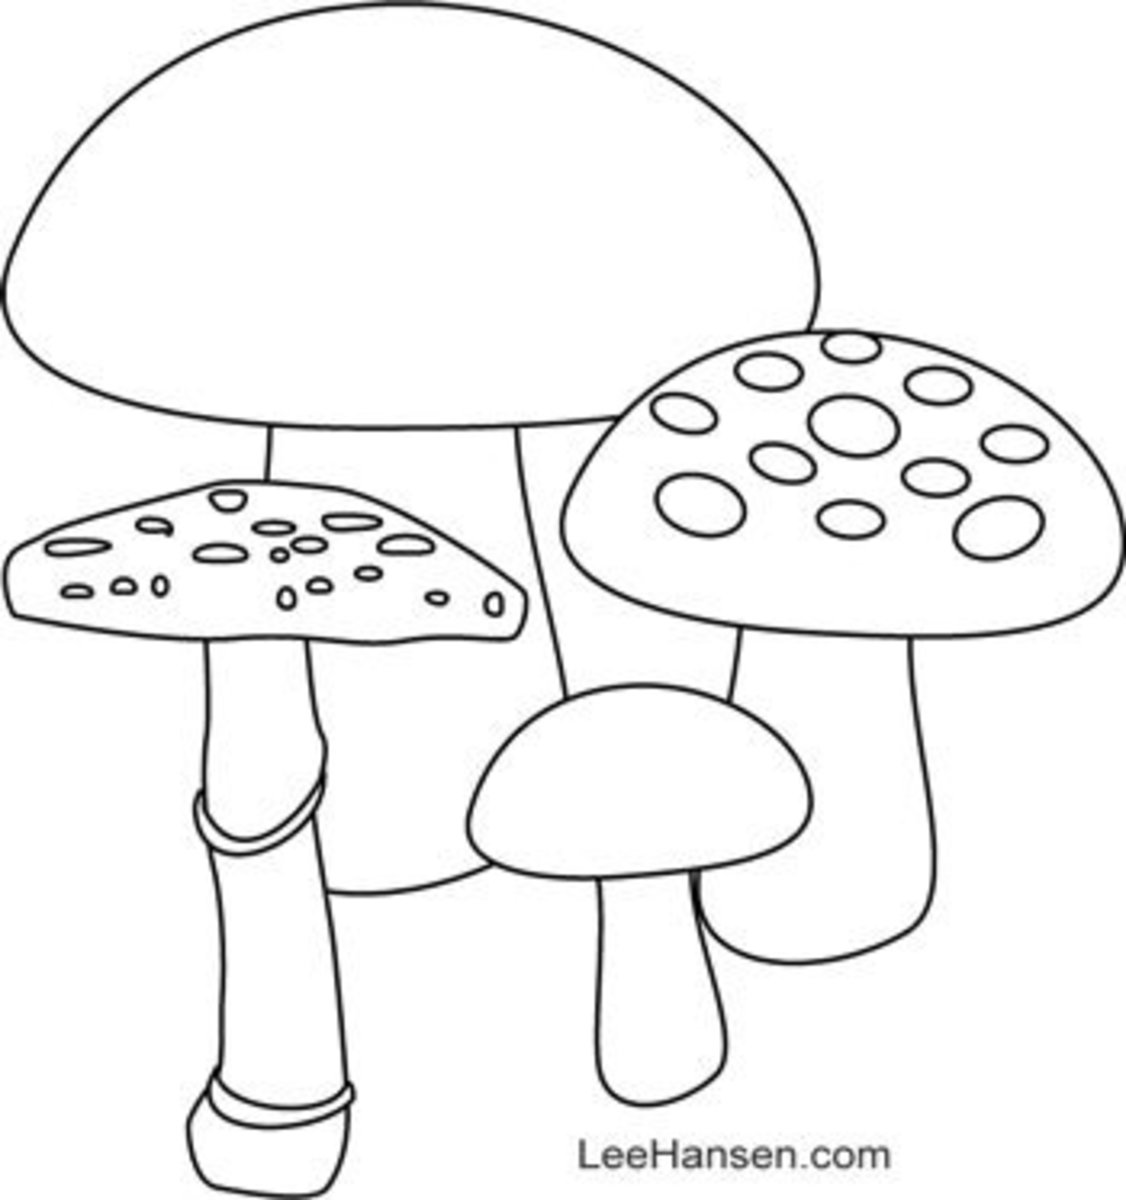 Gnome Coloring Pages | HubPages